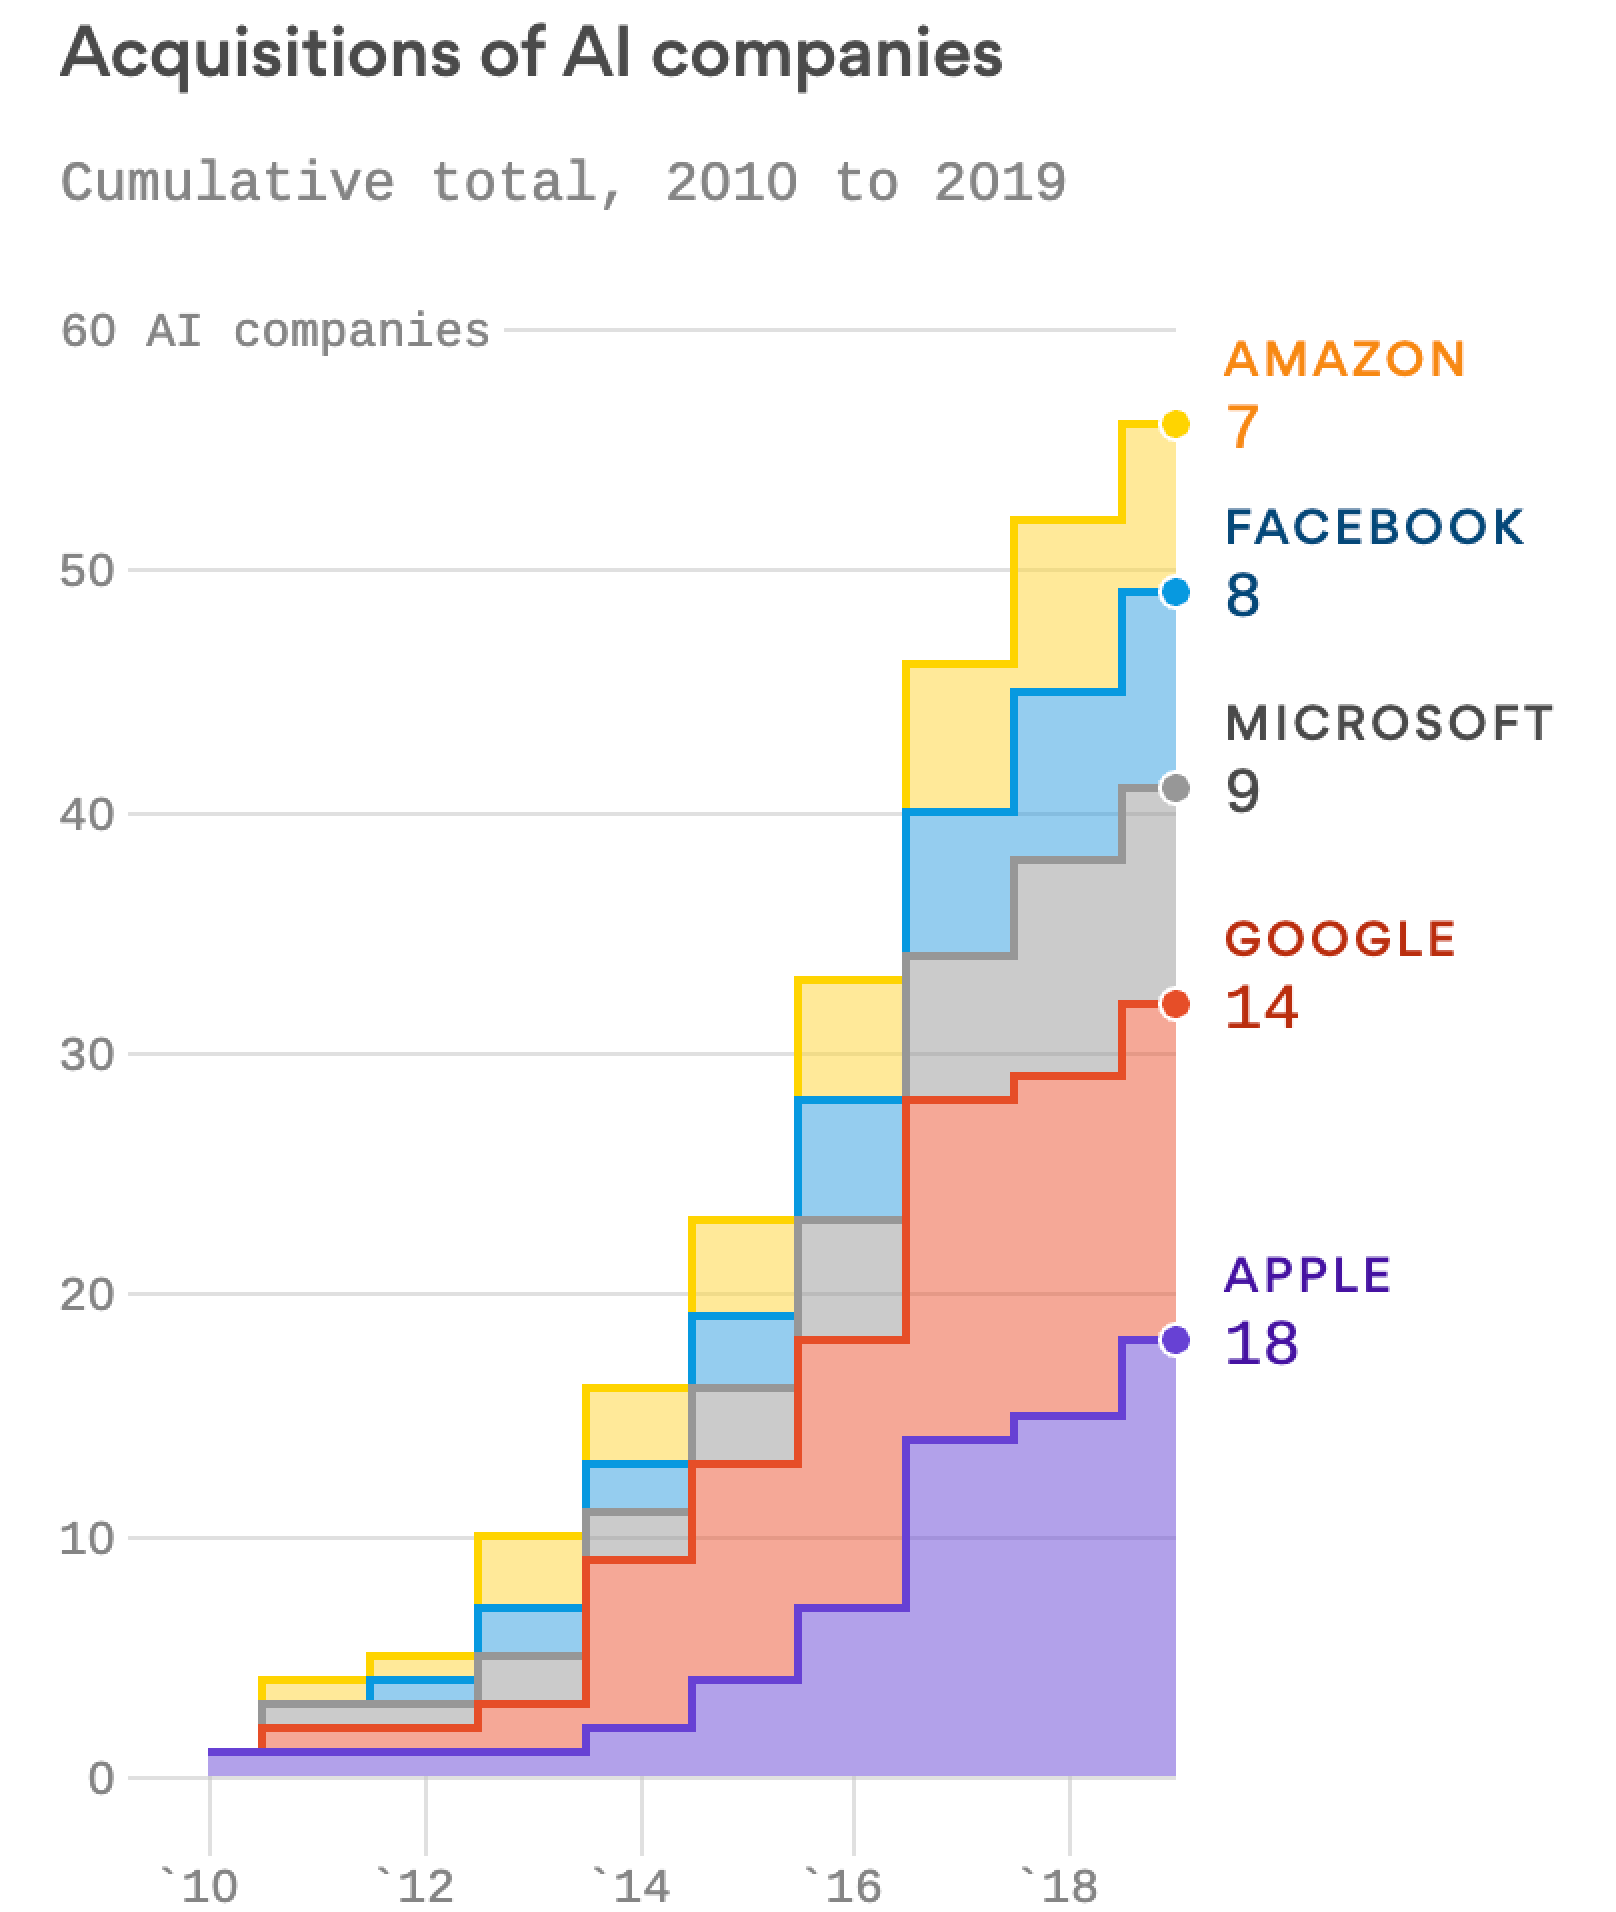 Apple, Google scrap for scarce AI expertise with more than 50 acquisitions since 2010